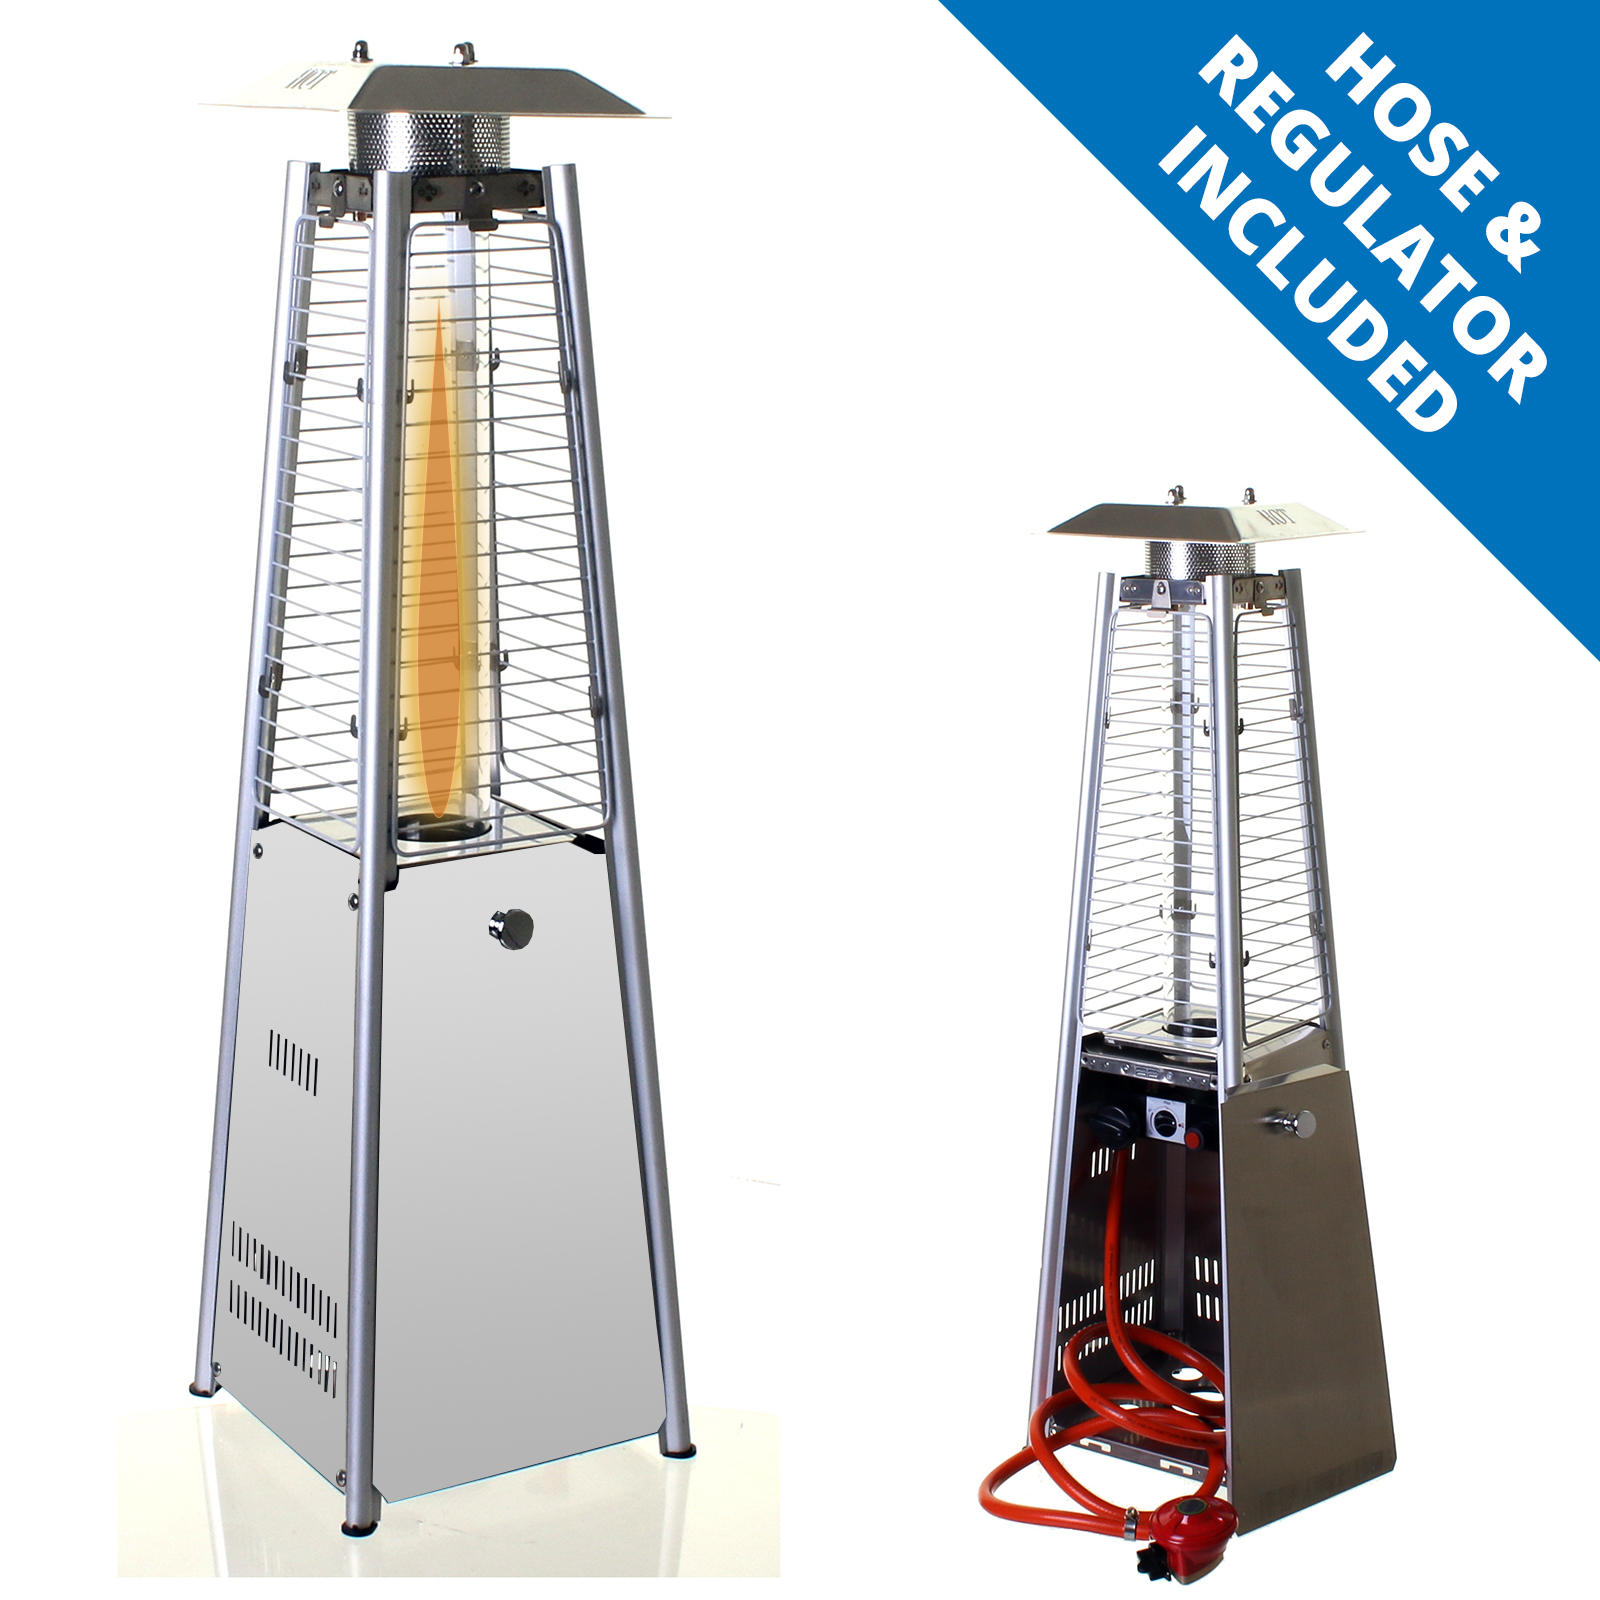 20 Patio Heater Hiland Tabletop Heater Ther Patio Heater